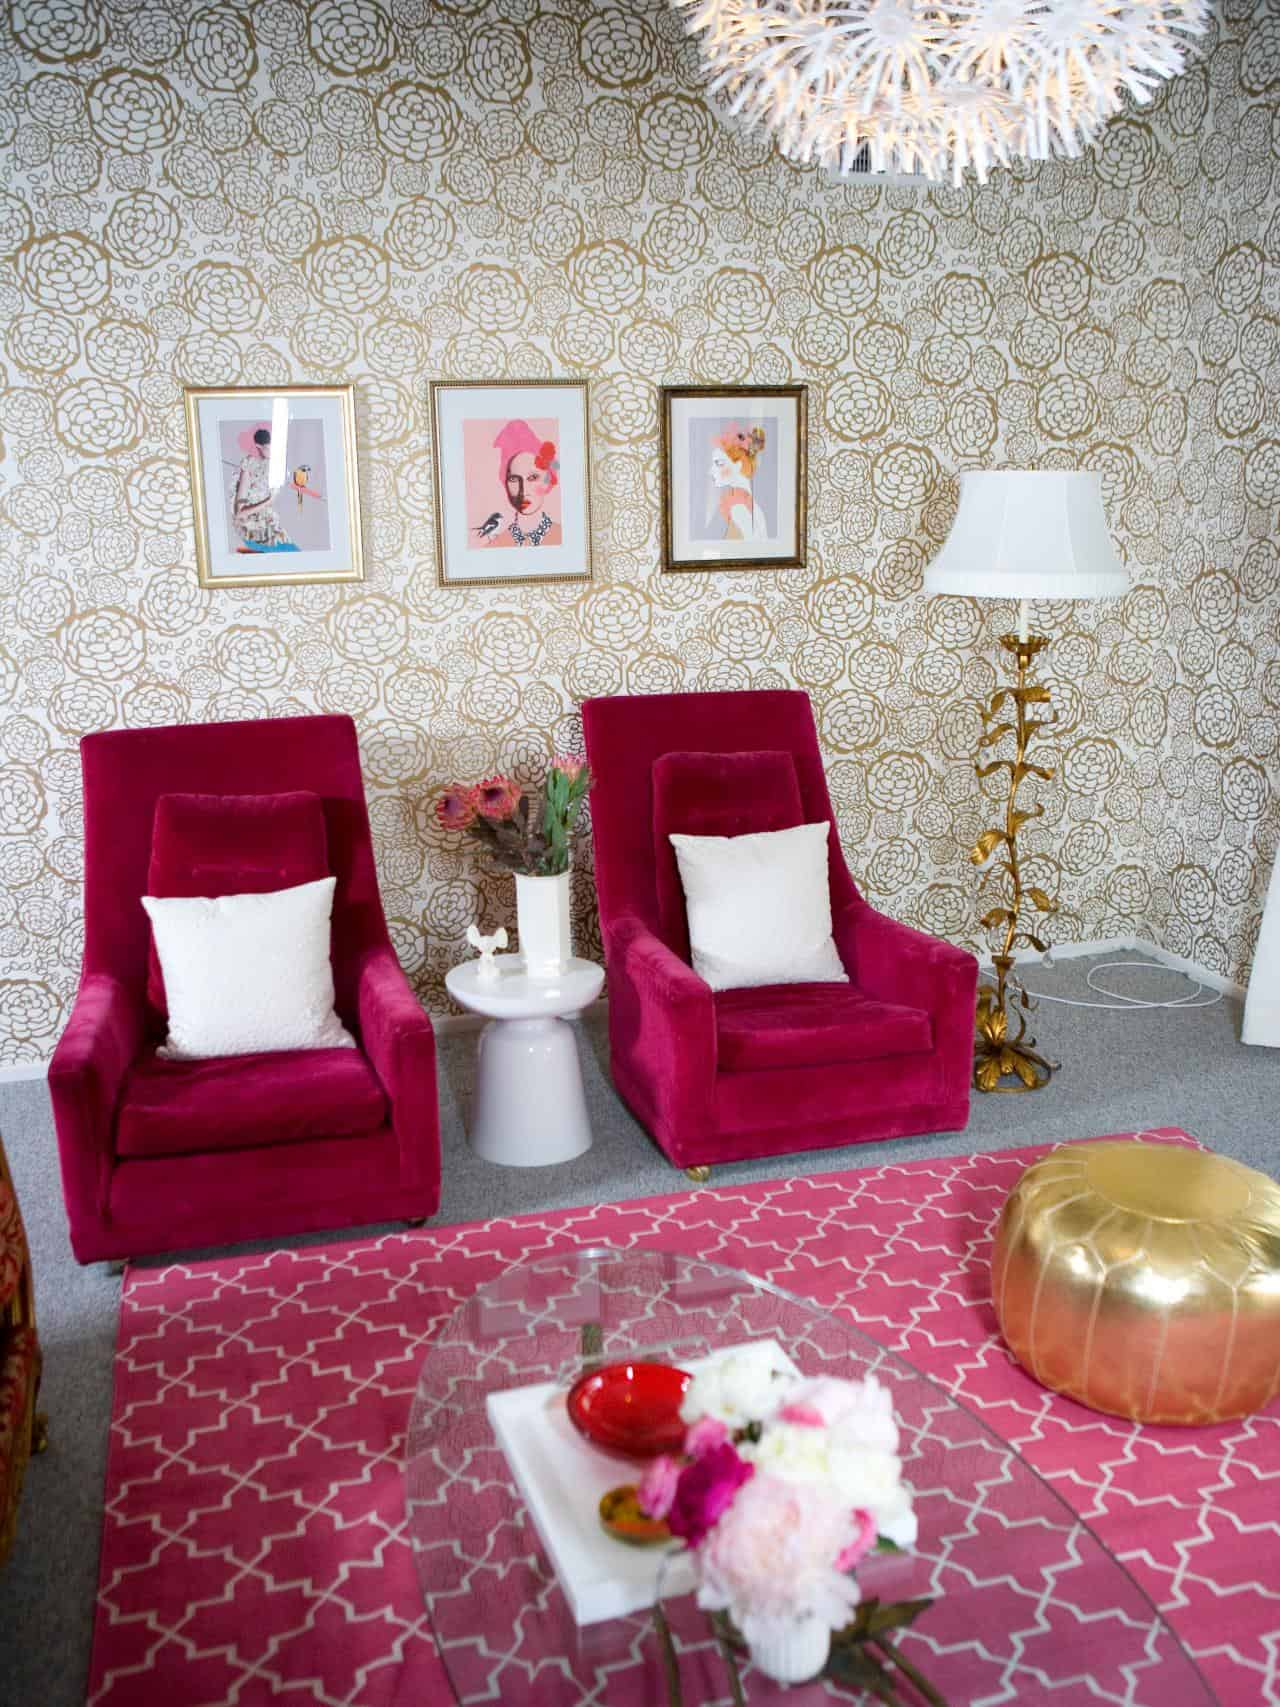 Hot Pink and Gold Room